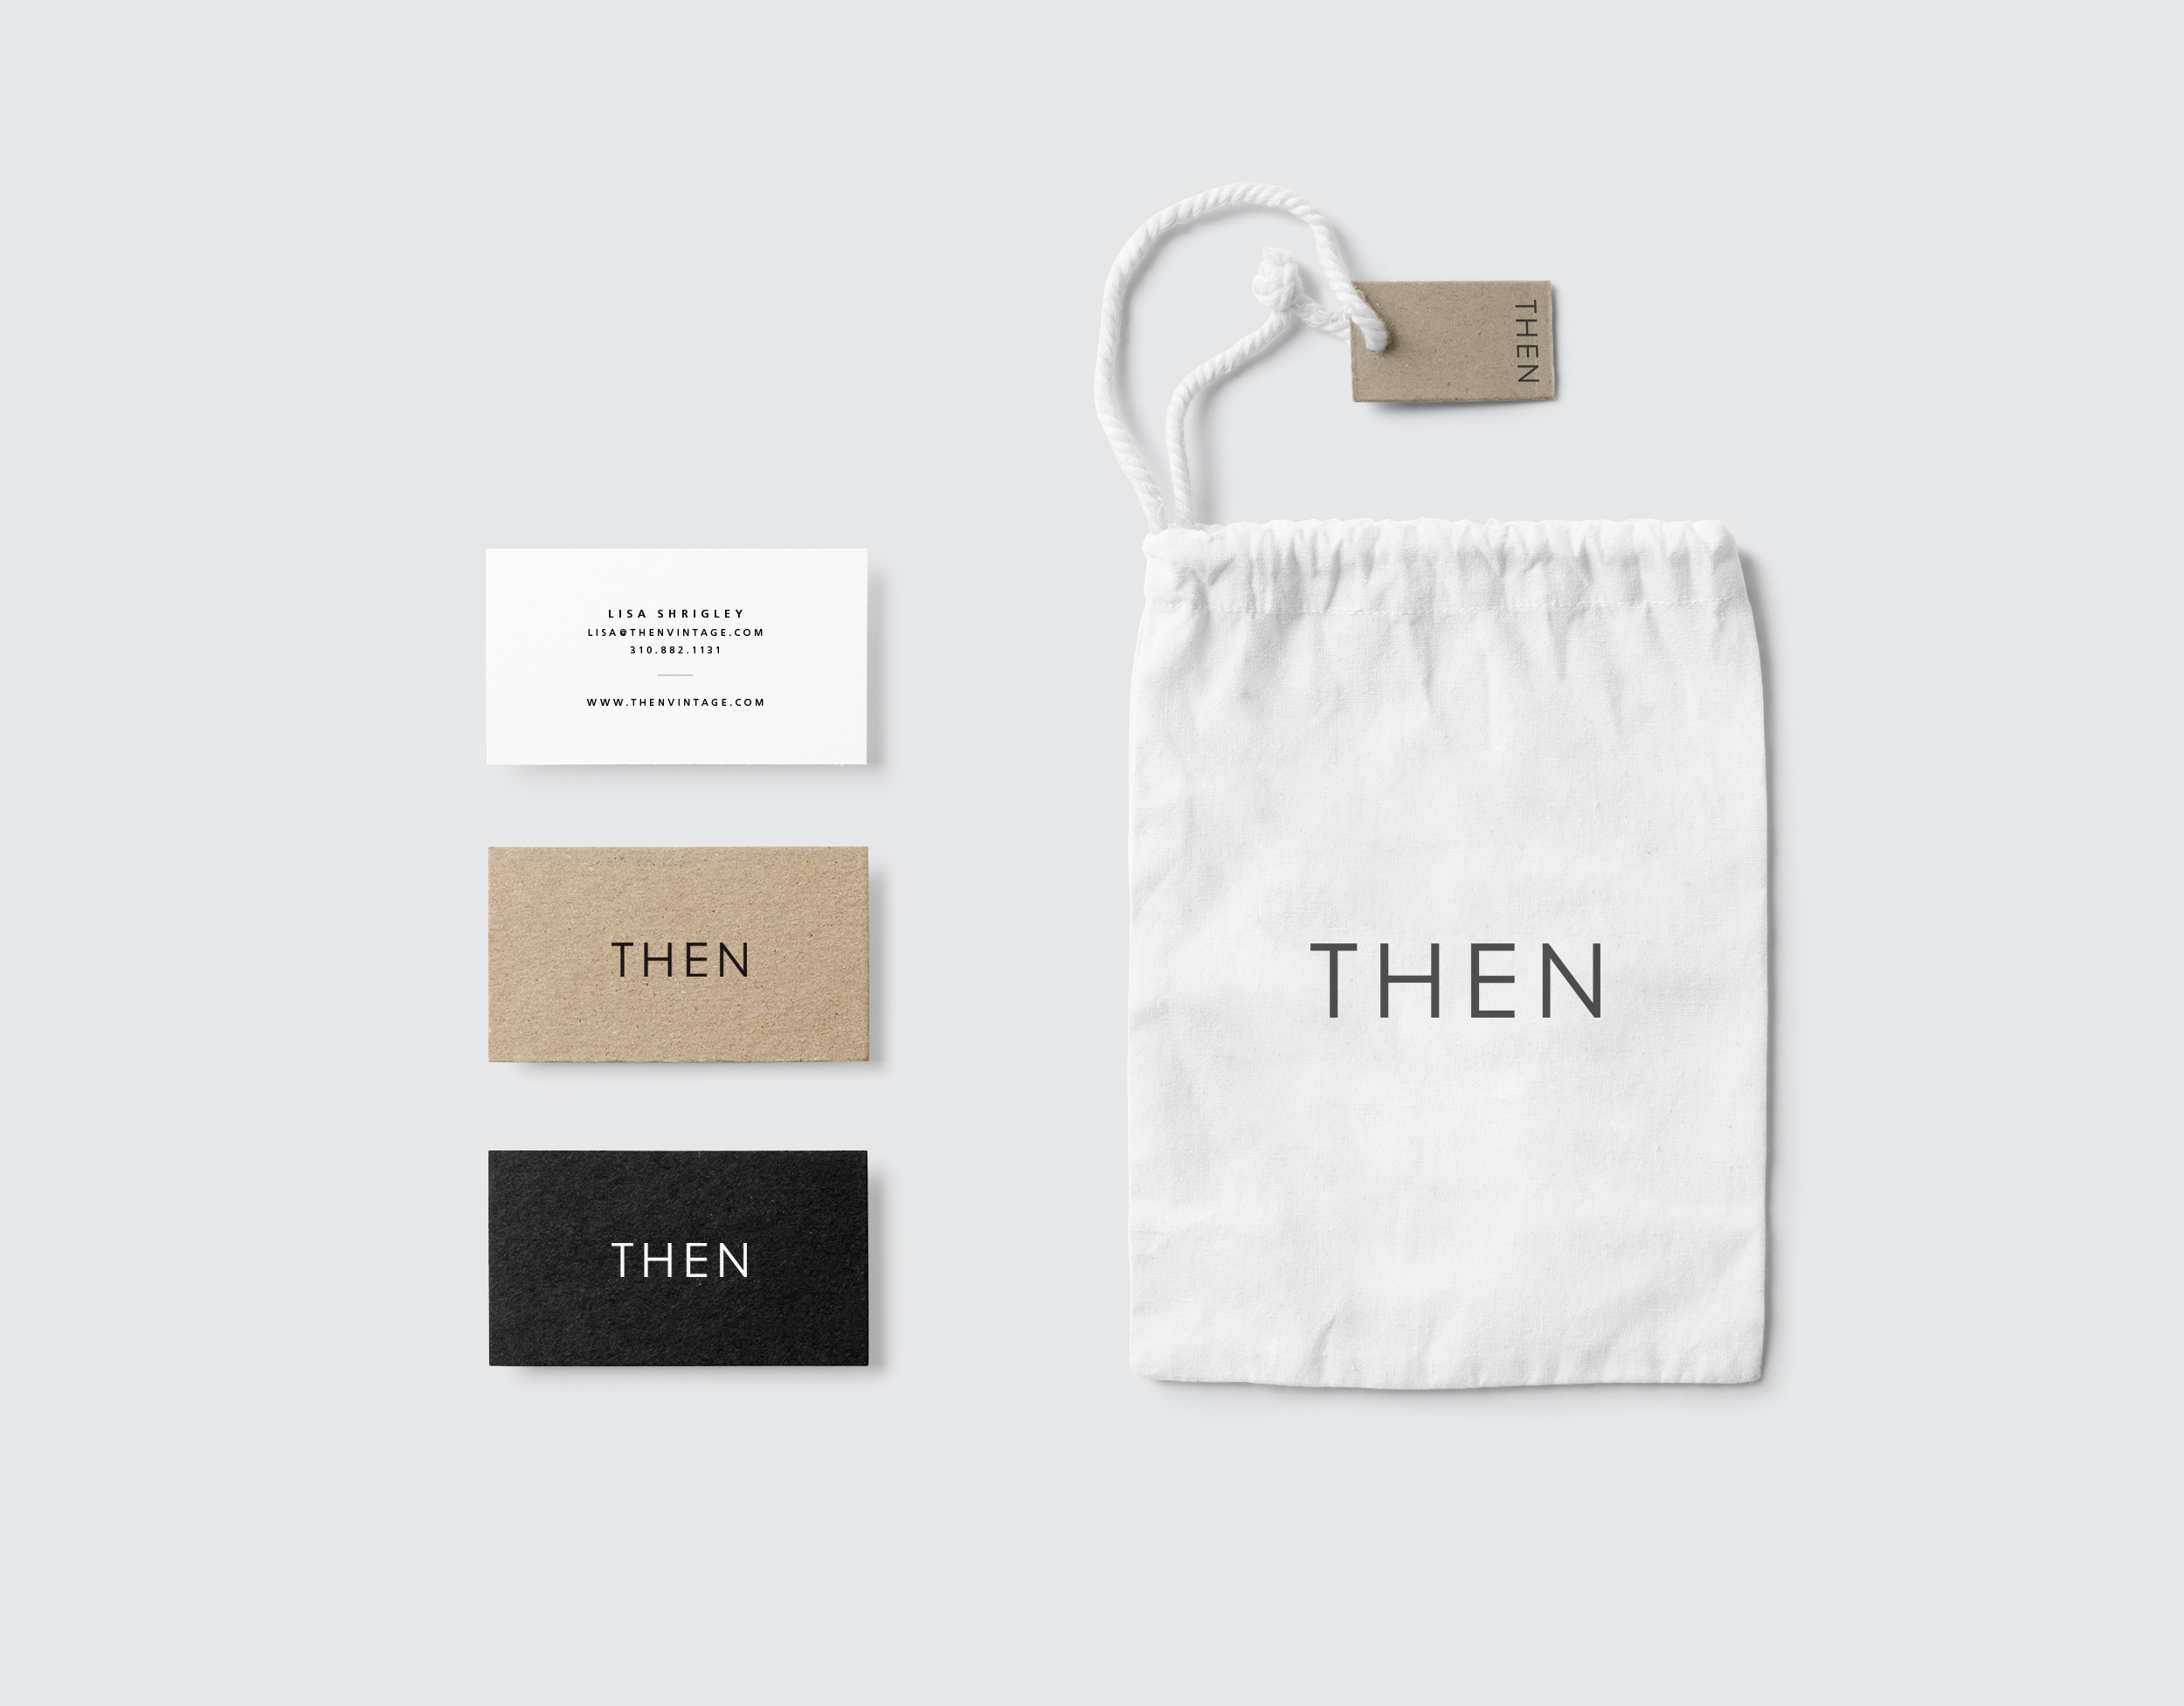 THEN Vintage - Naming + BrandingCreative Riot originated the name and brand identity of Then Vintage, an Arizona based vintage store whose aesthetic and vibe are minimal and utlitarian.